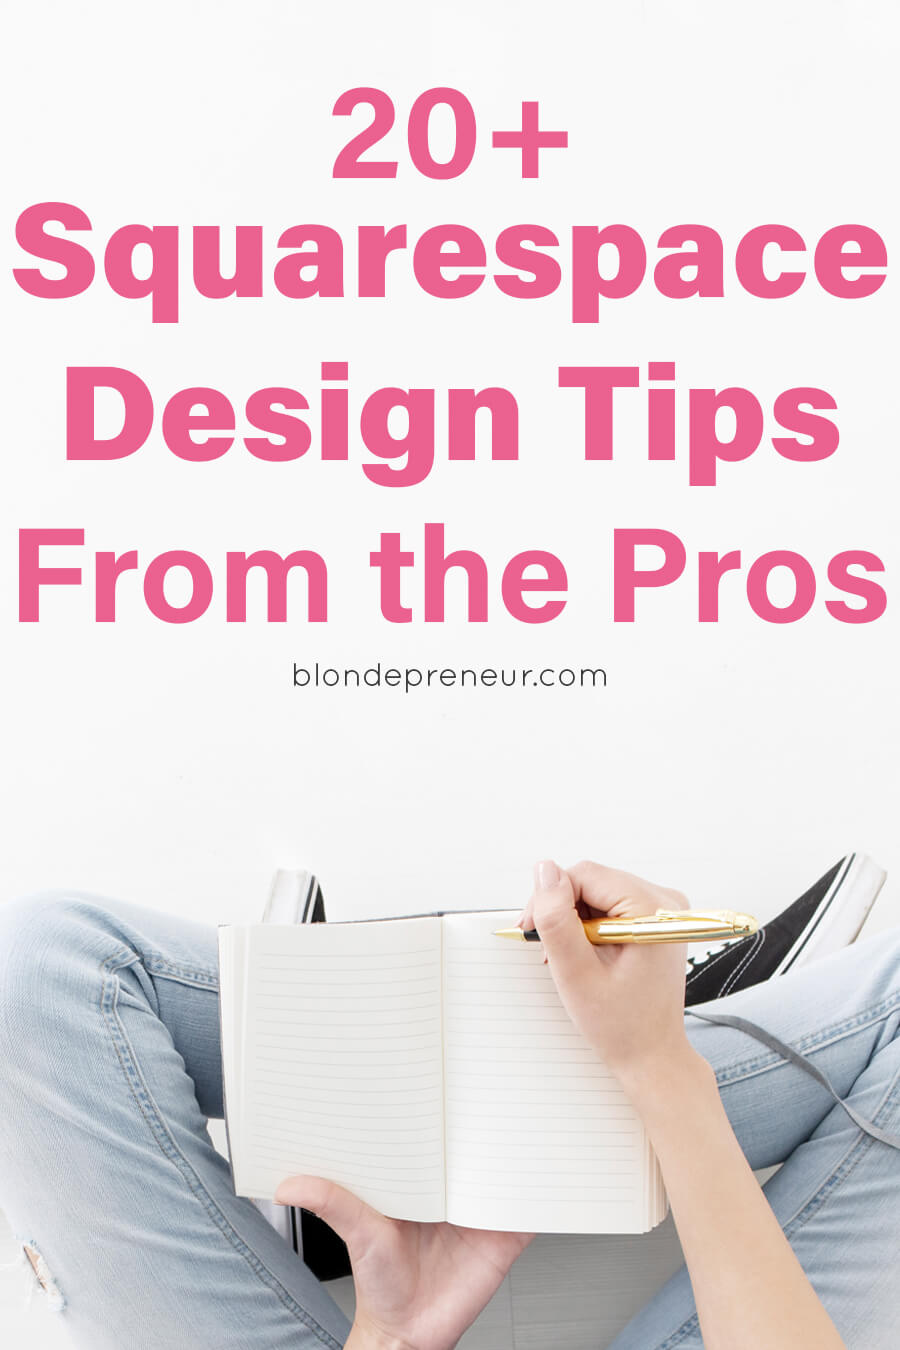 Get web design tricks from Squarespace pros! Learn 20+ unique ways you can easily customize your Squarespace website to look exactly the way you want. These hacks can either be done with what is available to you in your template or by adding simple HTML or CSS code. Design the on brand website of your dreams with Squarespace! #webdesign #designtips #designhacks #squarespace